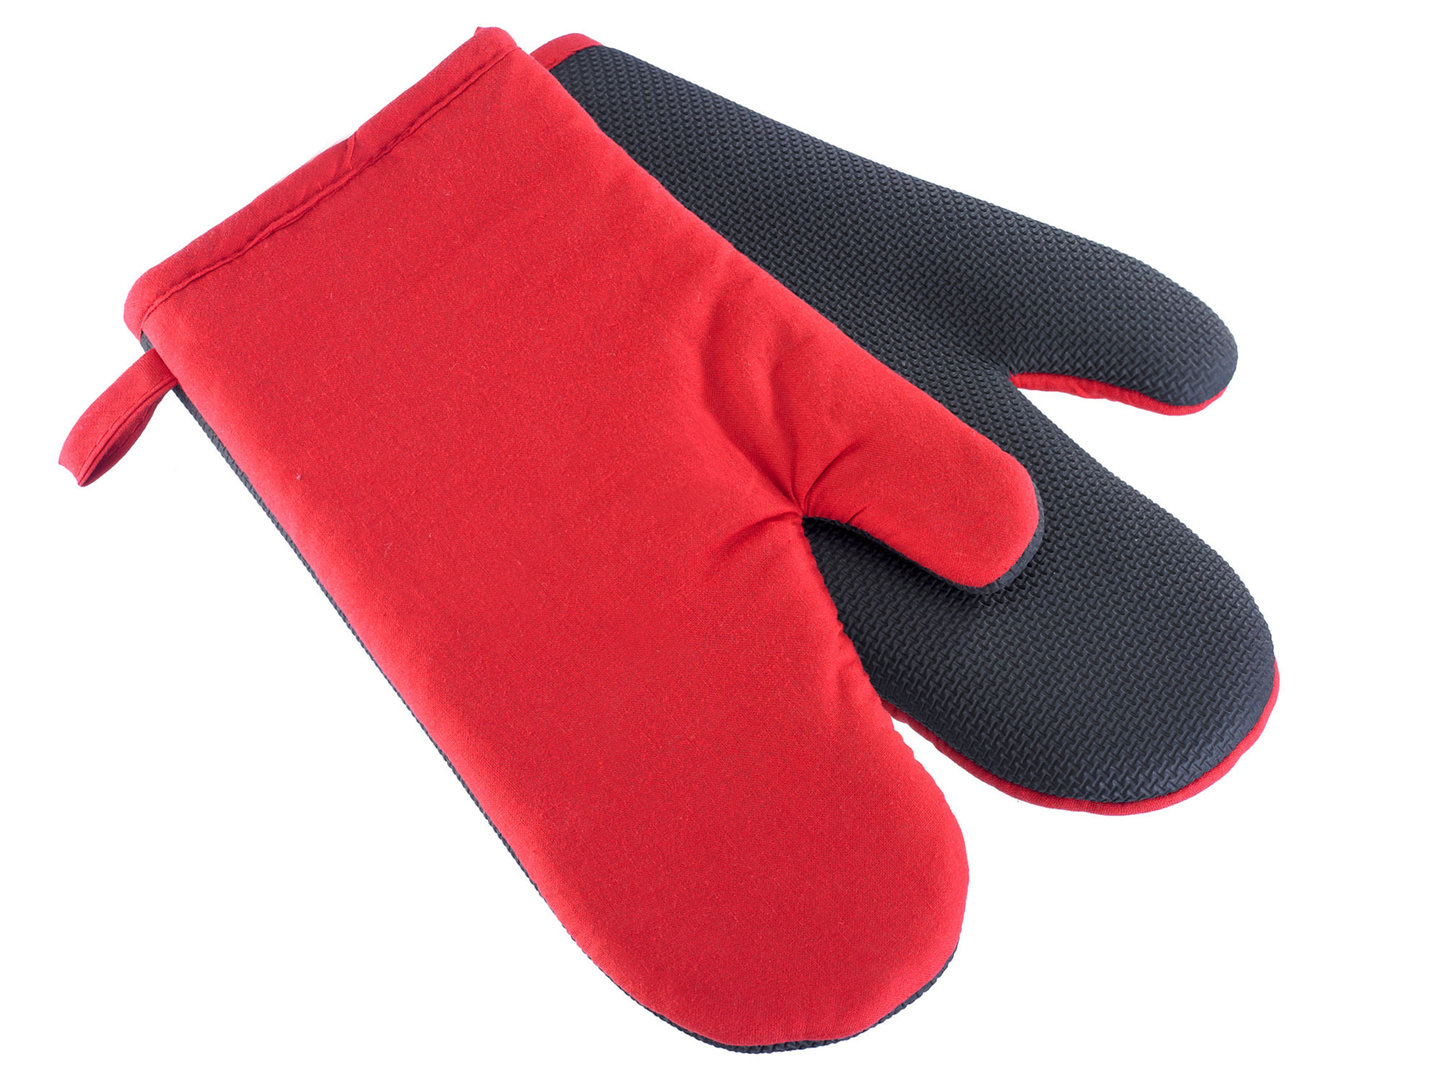 WESTMARK 2 kitchen gloves red-black slip-resistant Neoprene + cotton washable